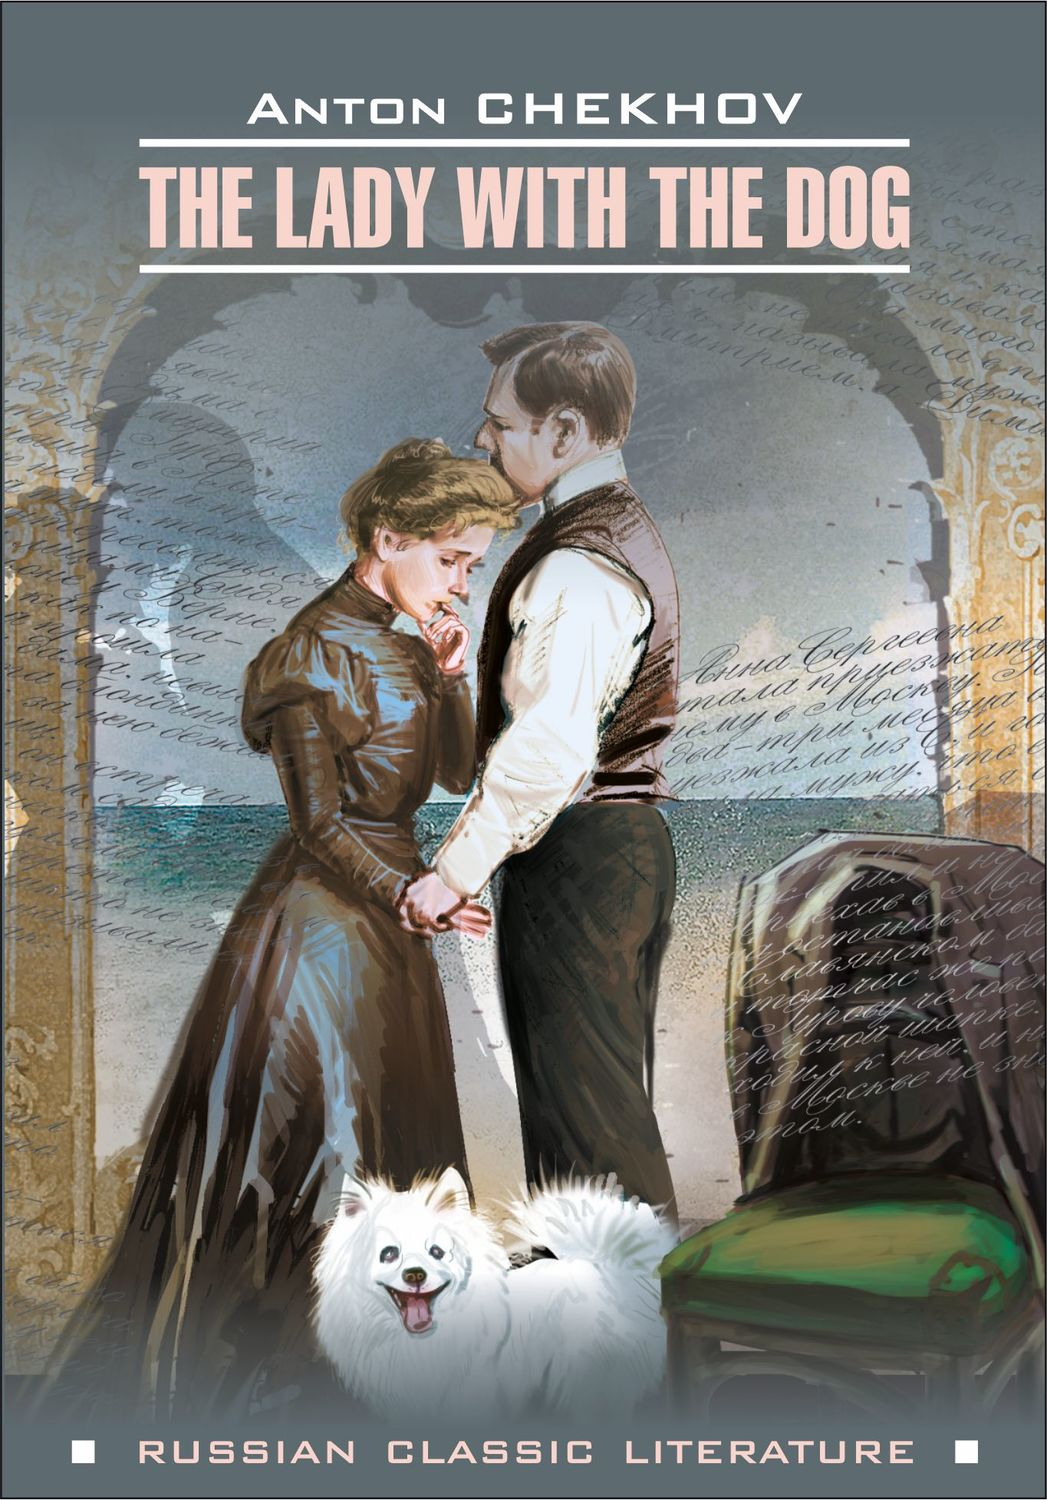 an analysis of the lady with the dog by anton chekhov Psychological analysis of anton chekhov's the lady with the pet dog in anton chekhov's short story, the lady with the pet dog, dmitry dmitrich gurov and anna sergeyevna are bound together, not by love, but by their psychological needs.